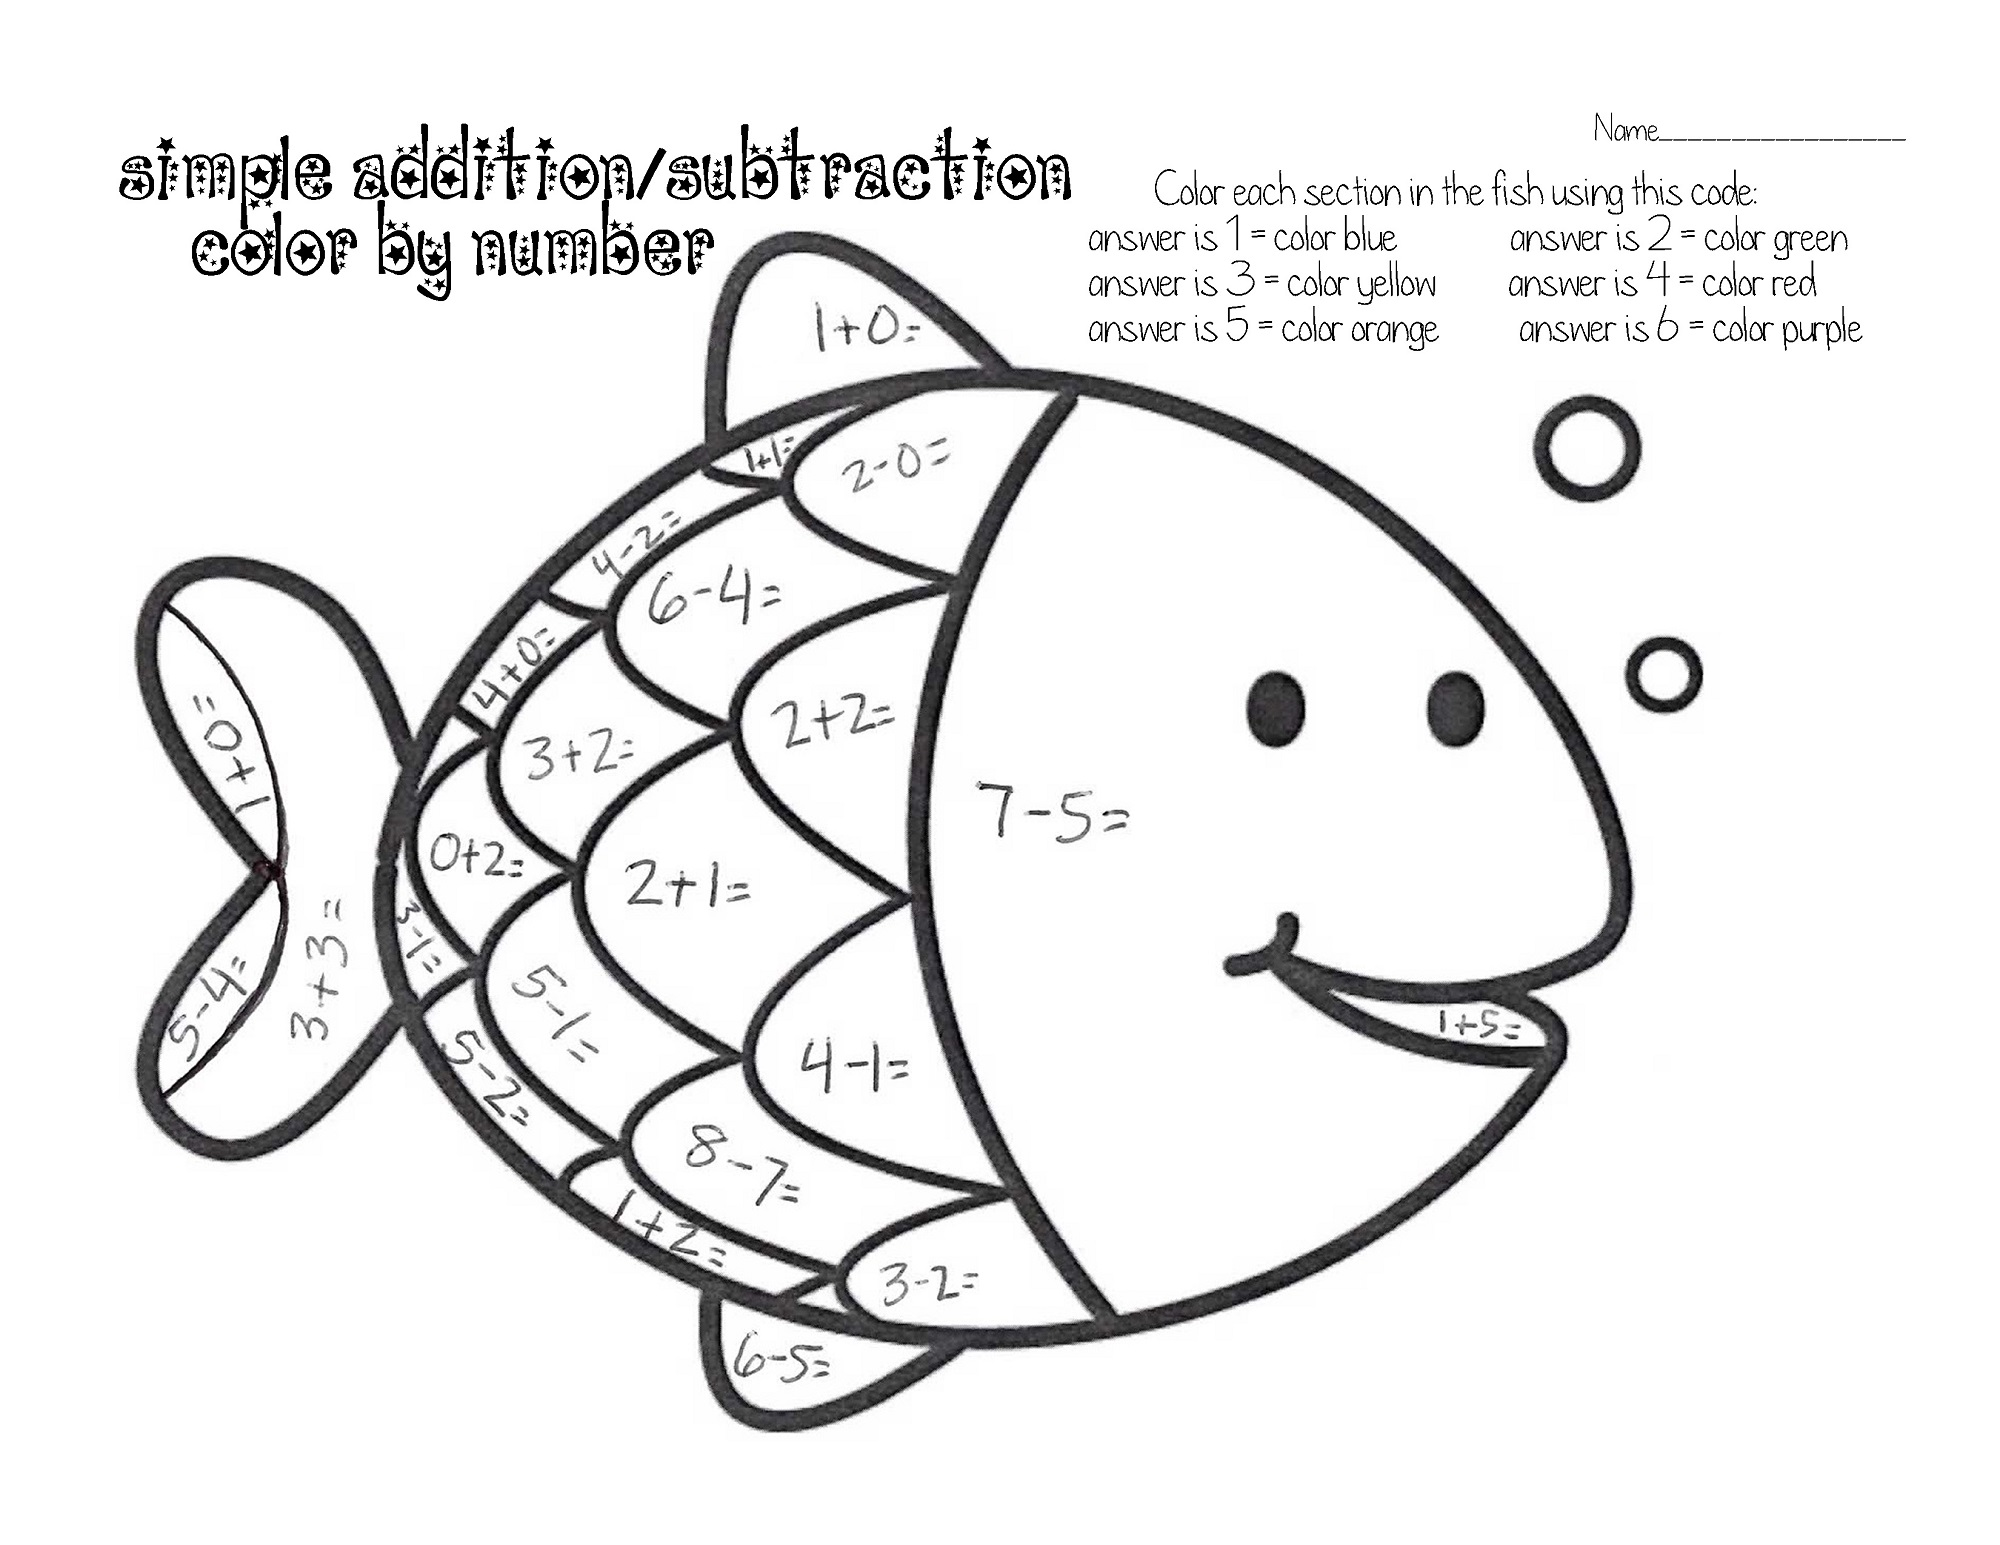 Easy Fun Fish Worksheets For Kids Color By Number Learning Printable